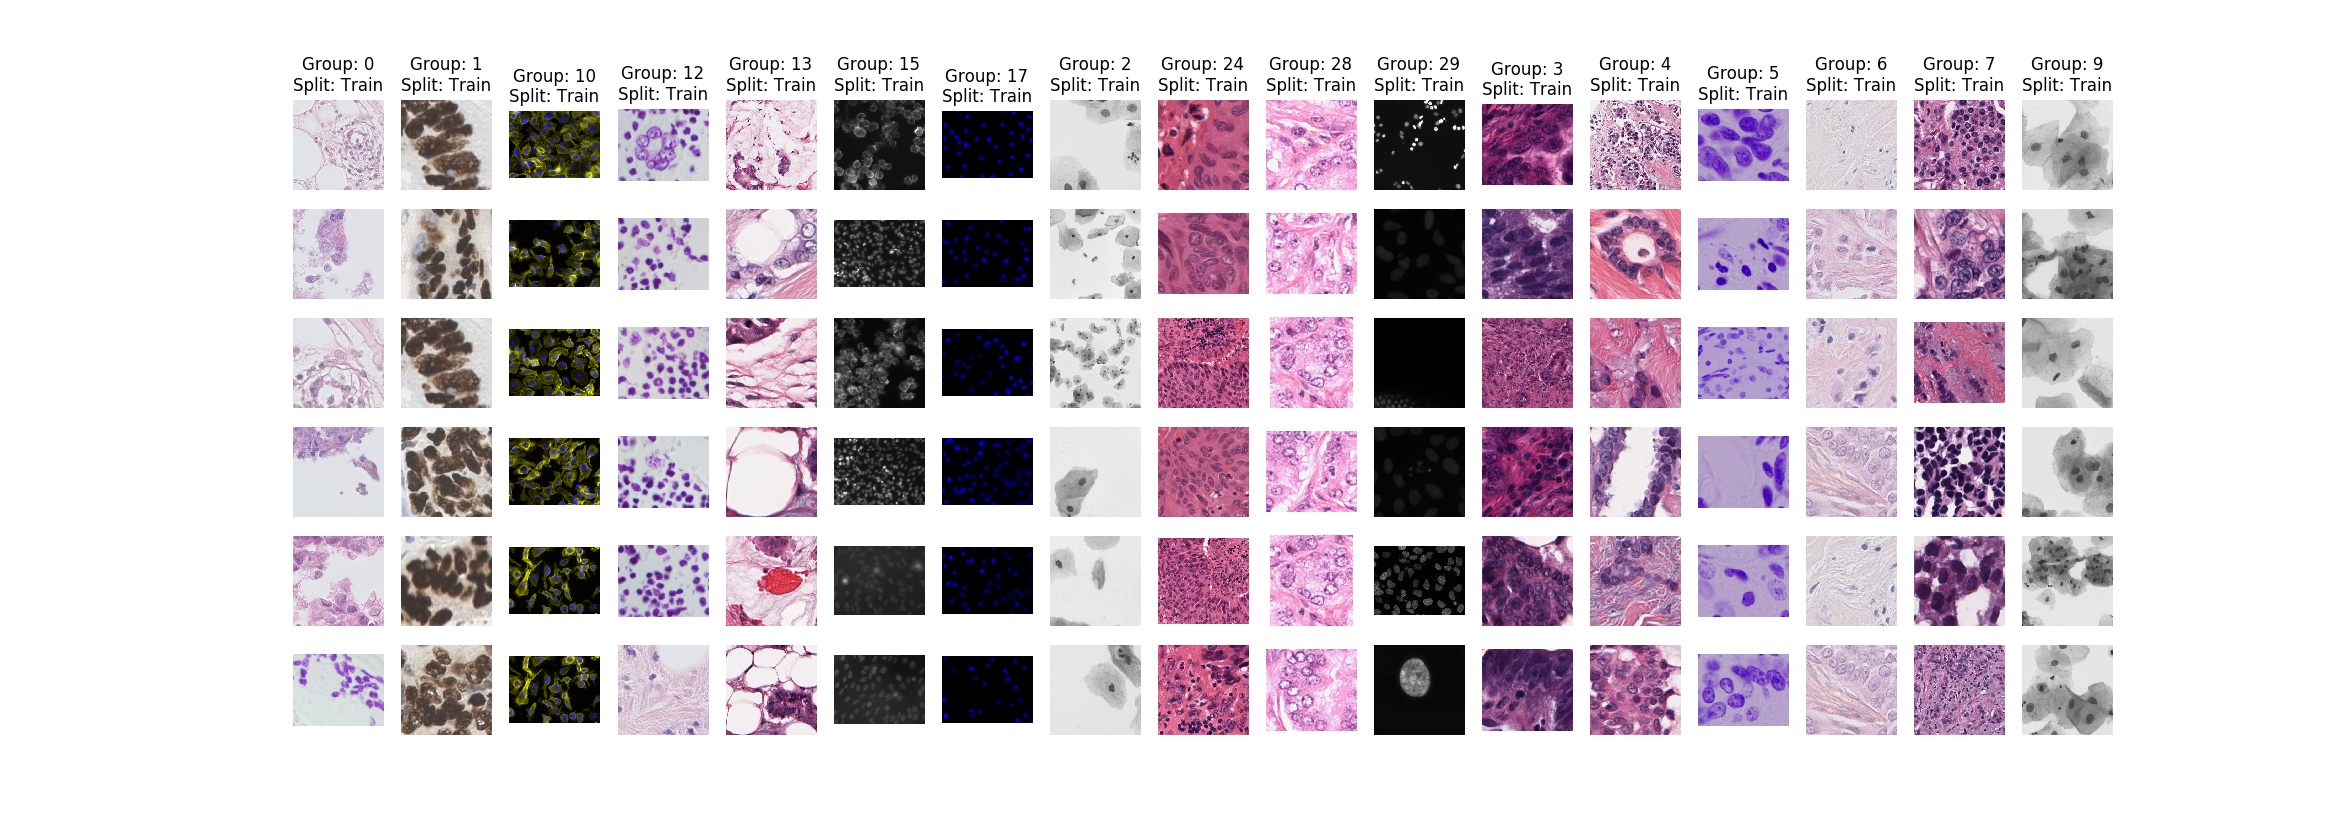 Nuclei Segmentation In Microscope Cell Images | Kaggle